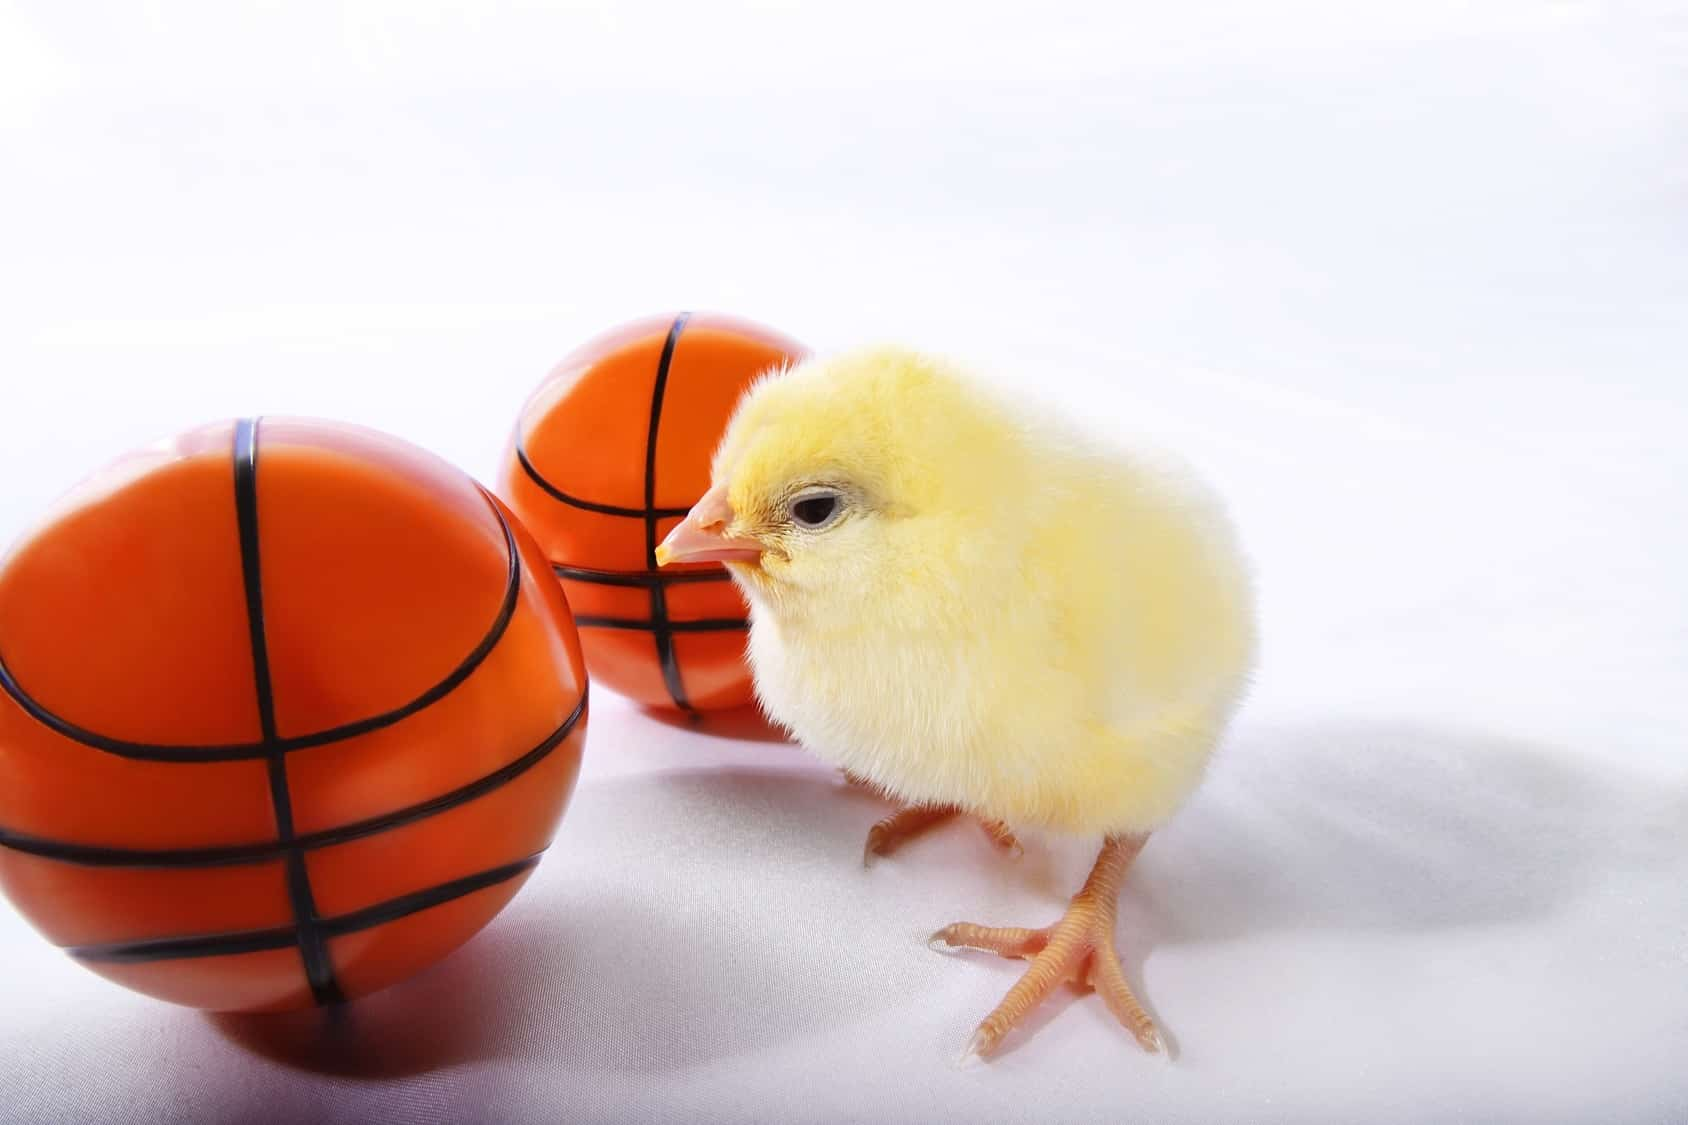 Full court chickens